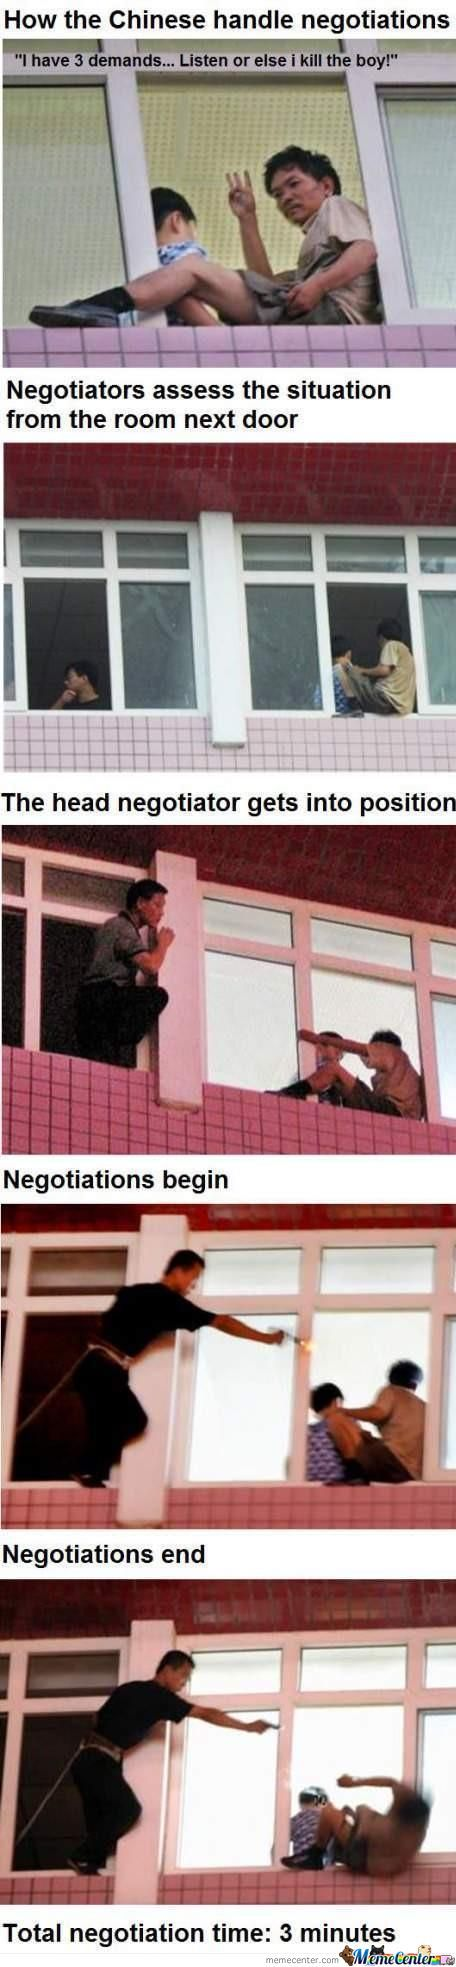 Chinese Negotiations